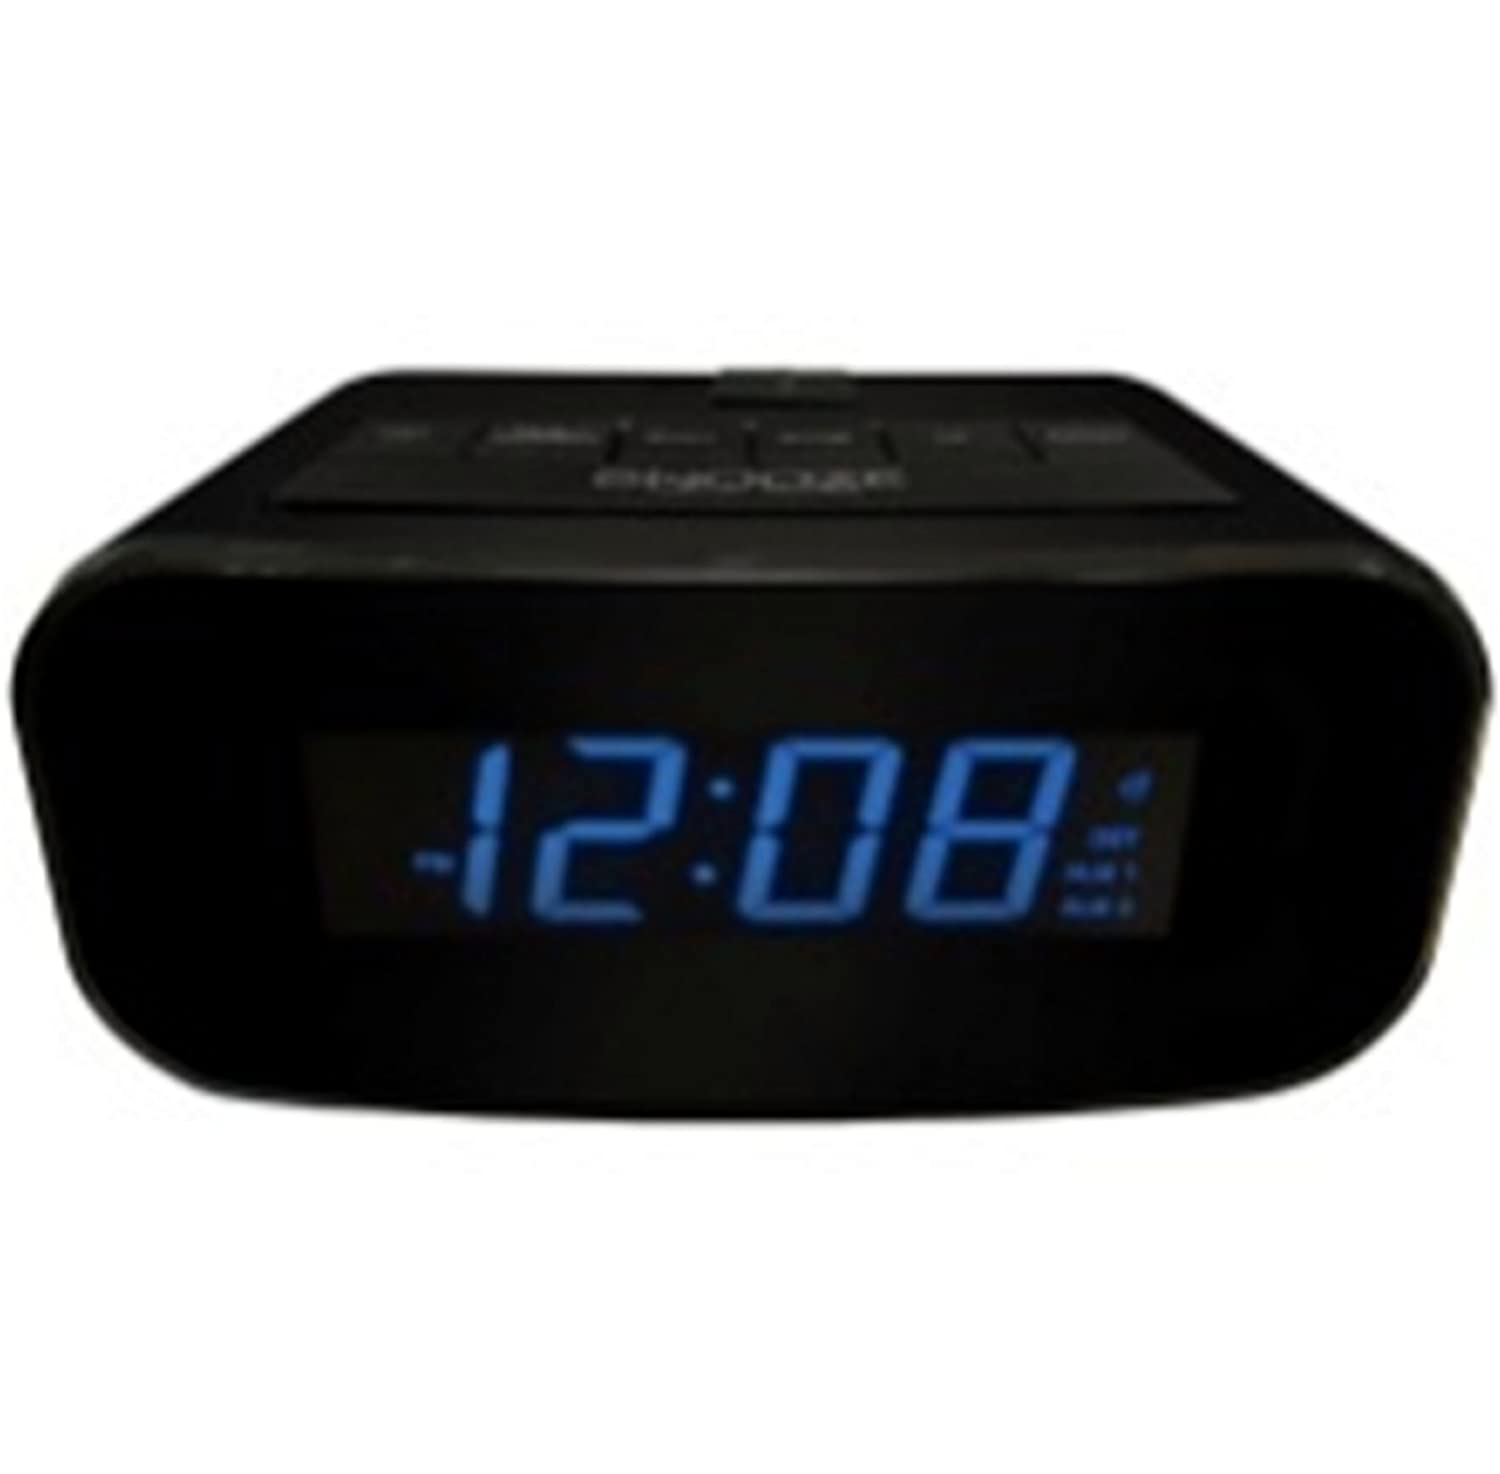 Amazoncom Advance Time Technology 09 Inch Electric LCD